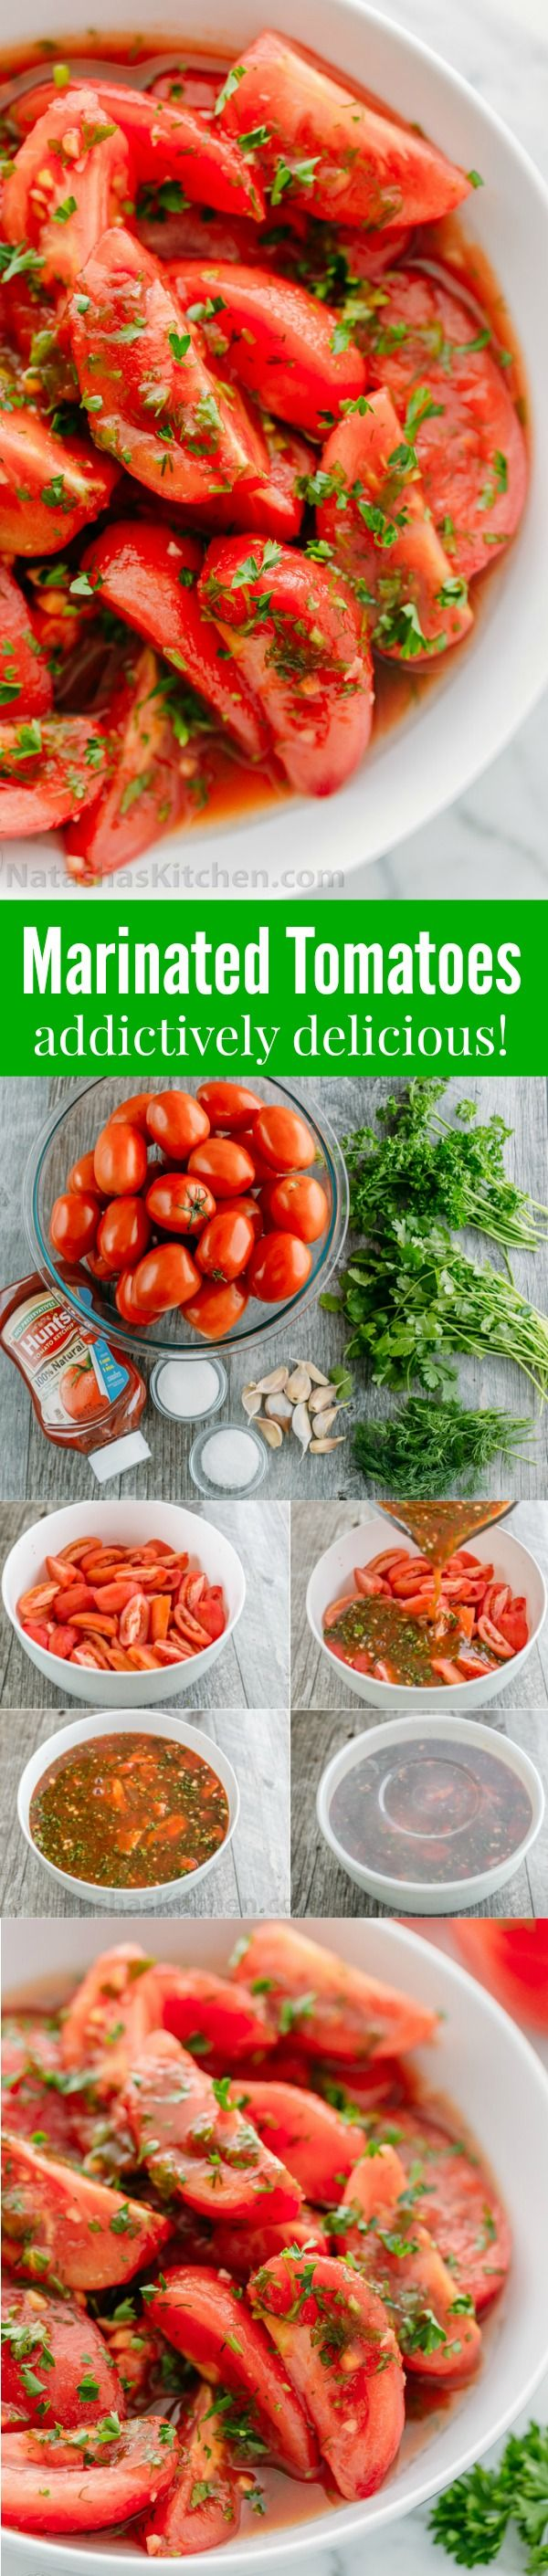 Addictively delicious! Served these marinated tomatoes at a potluck and everyone…